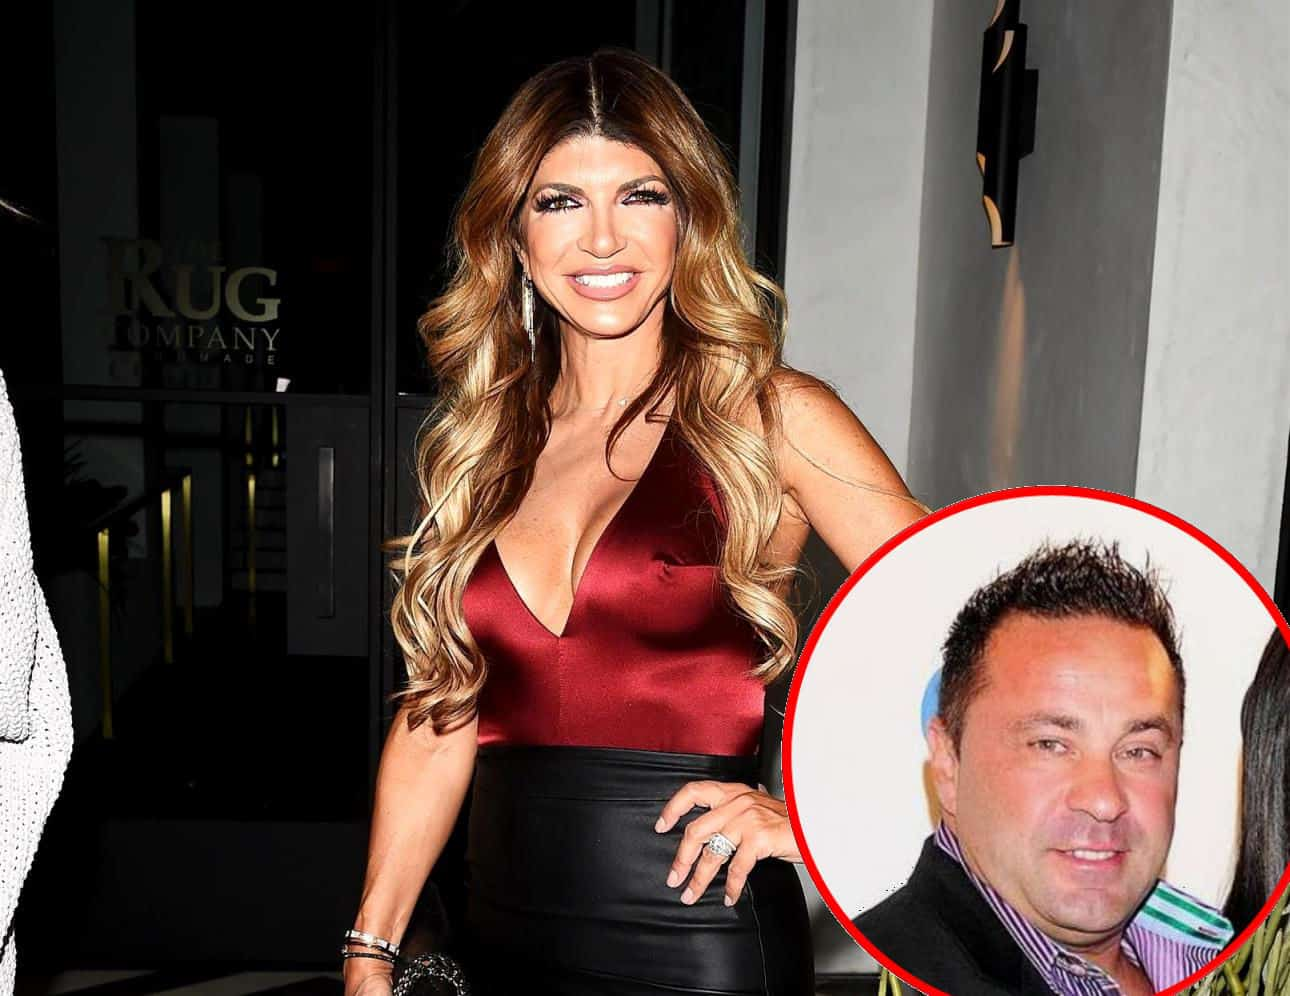 RHONJ's Teresa Giudice Was Spotted Flirting With Mystery Man